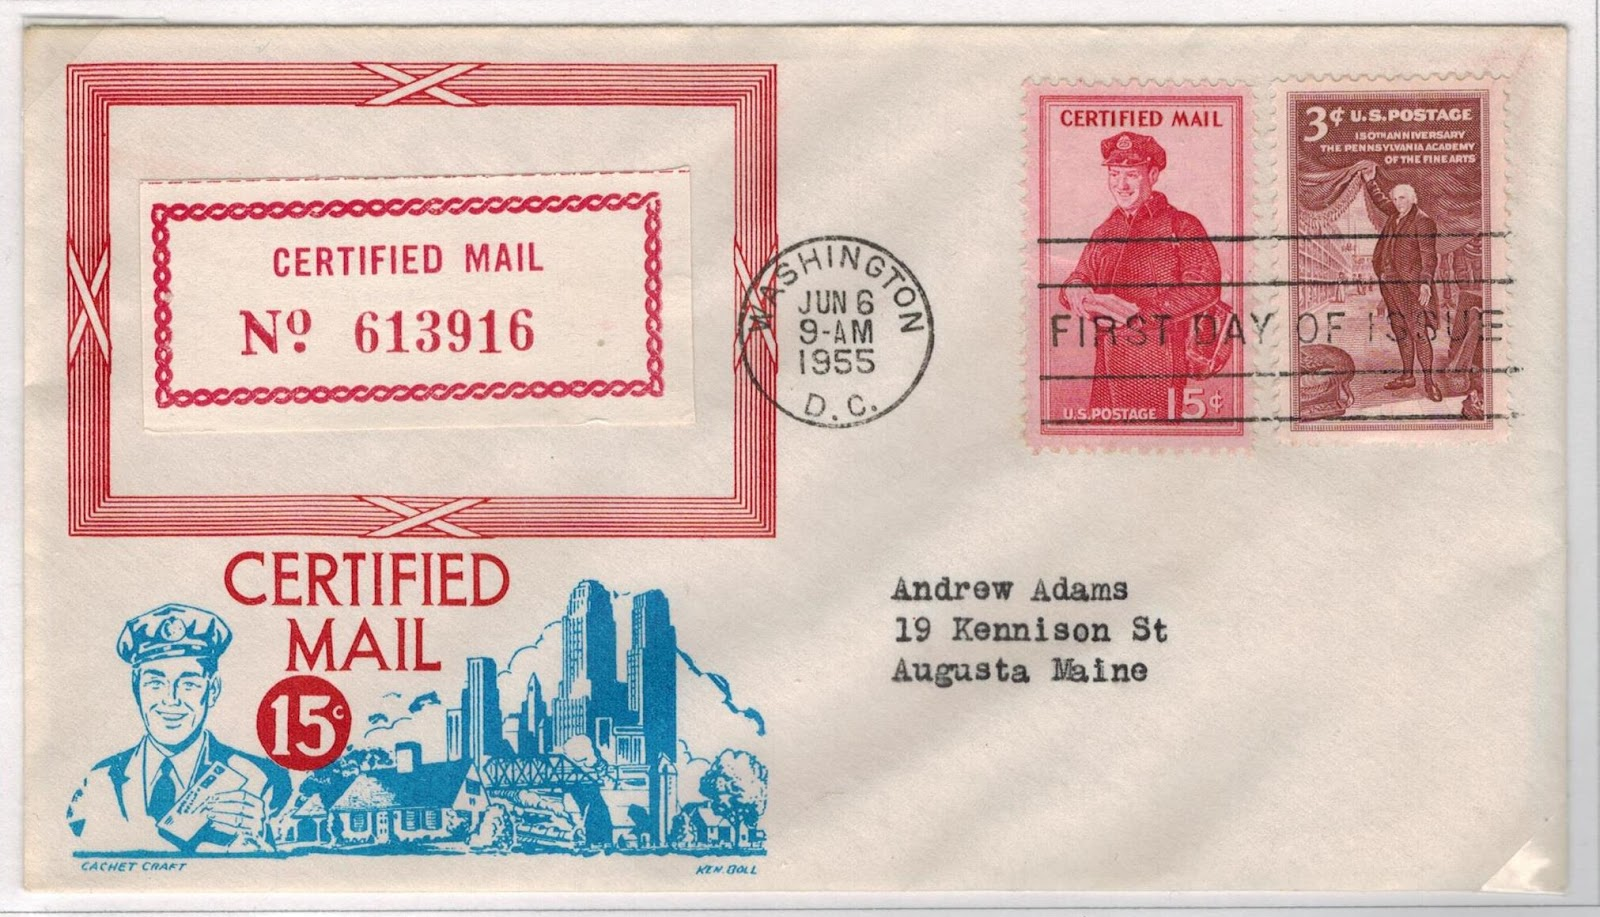 Canadapoststampprices2010. Cost Of First Class Letter To Canada. View ...